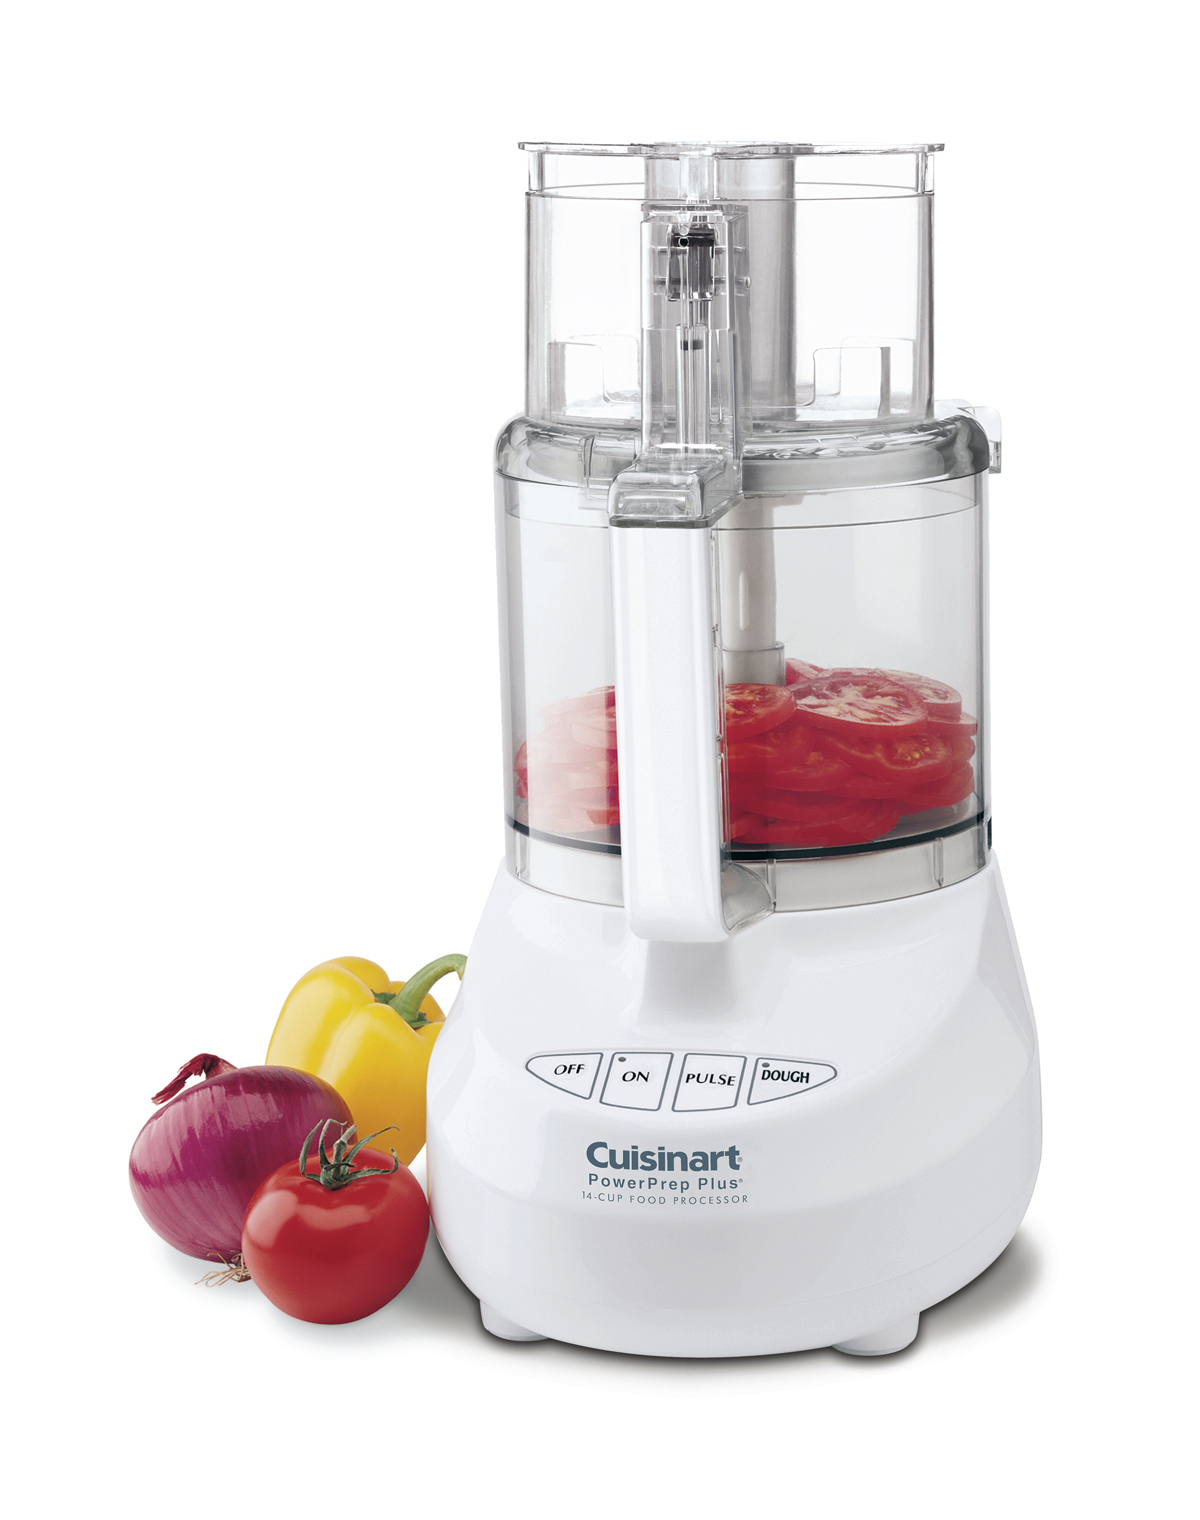 Cuisinart DLC-2014NY PowerPrep Plus 14-Cup Food Processor